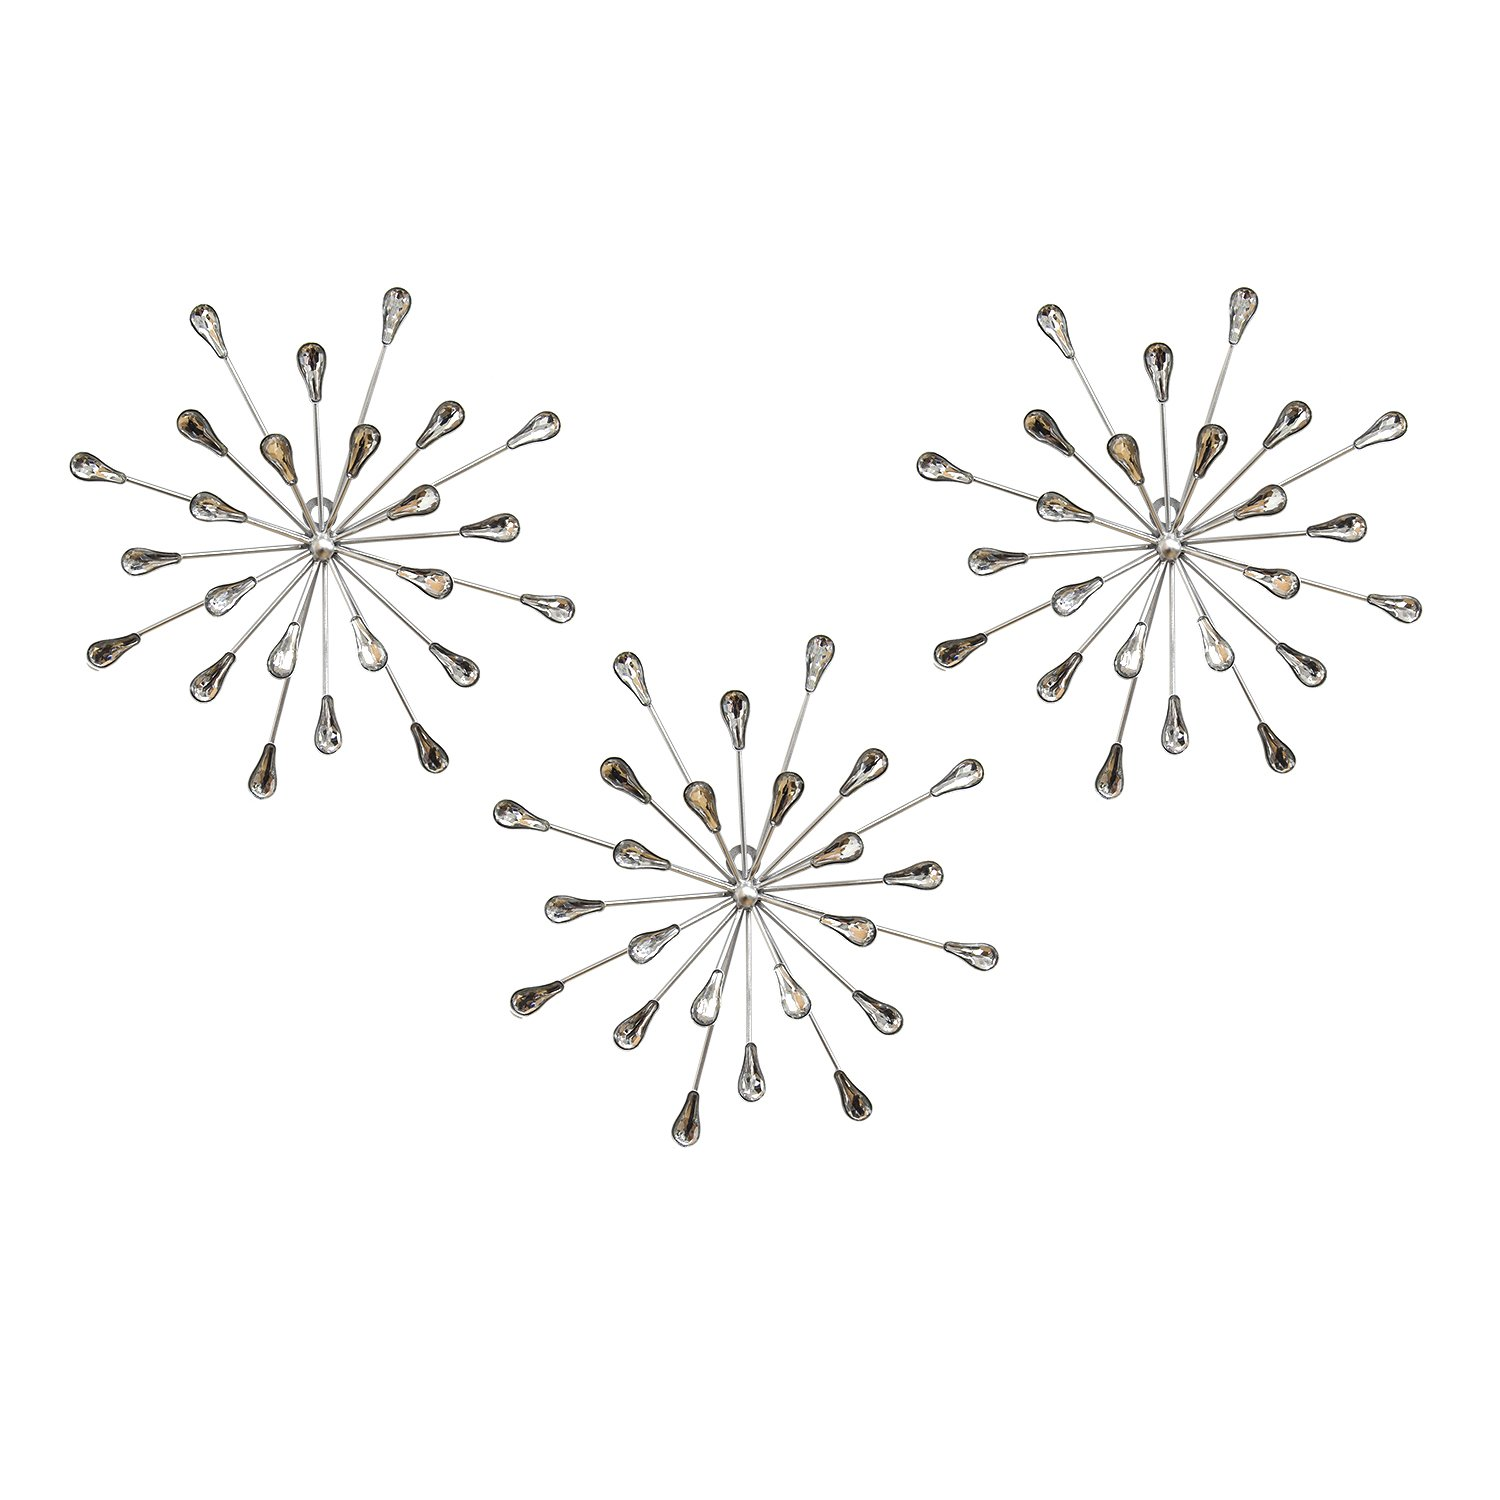 Stratton Home Decor S02380 Acrylic Burst Wall Decor, Set of 3, 10.00 W x 1.50 D x 30.00 H, Multi